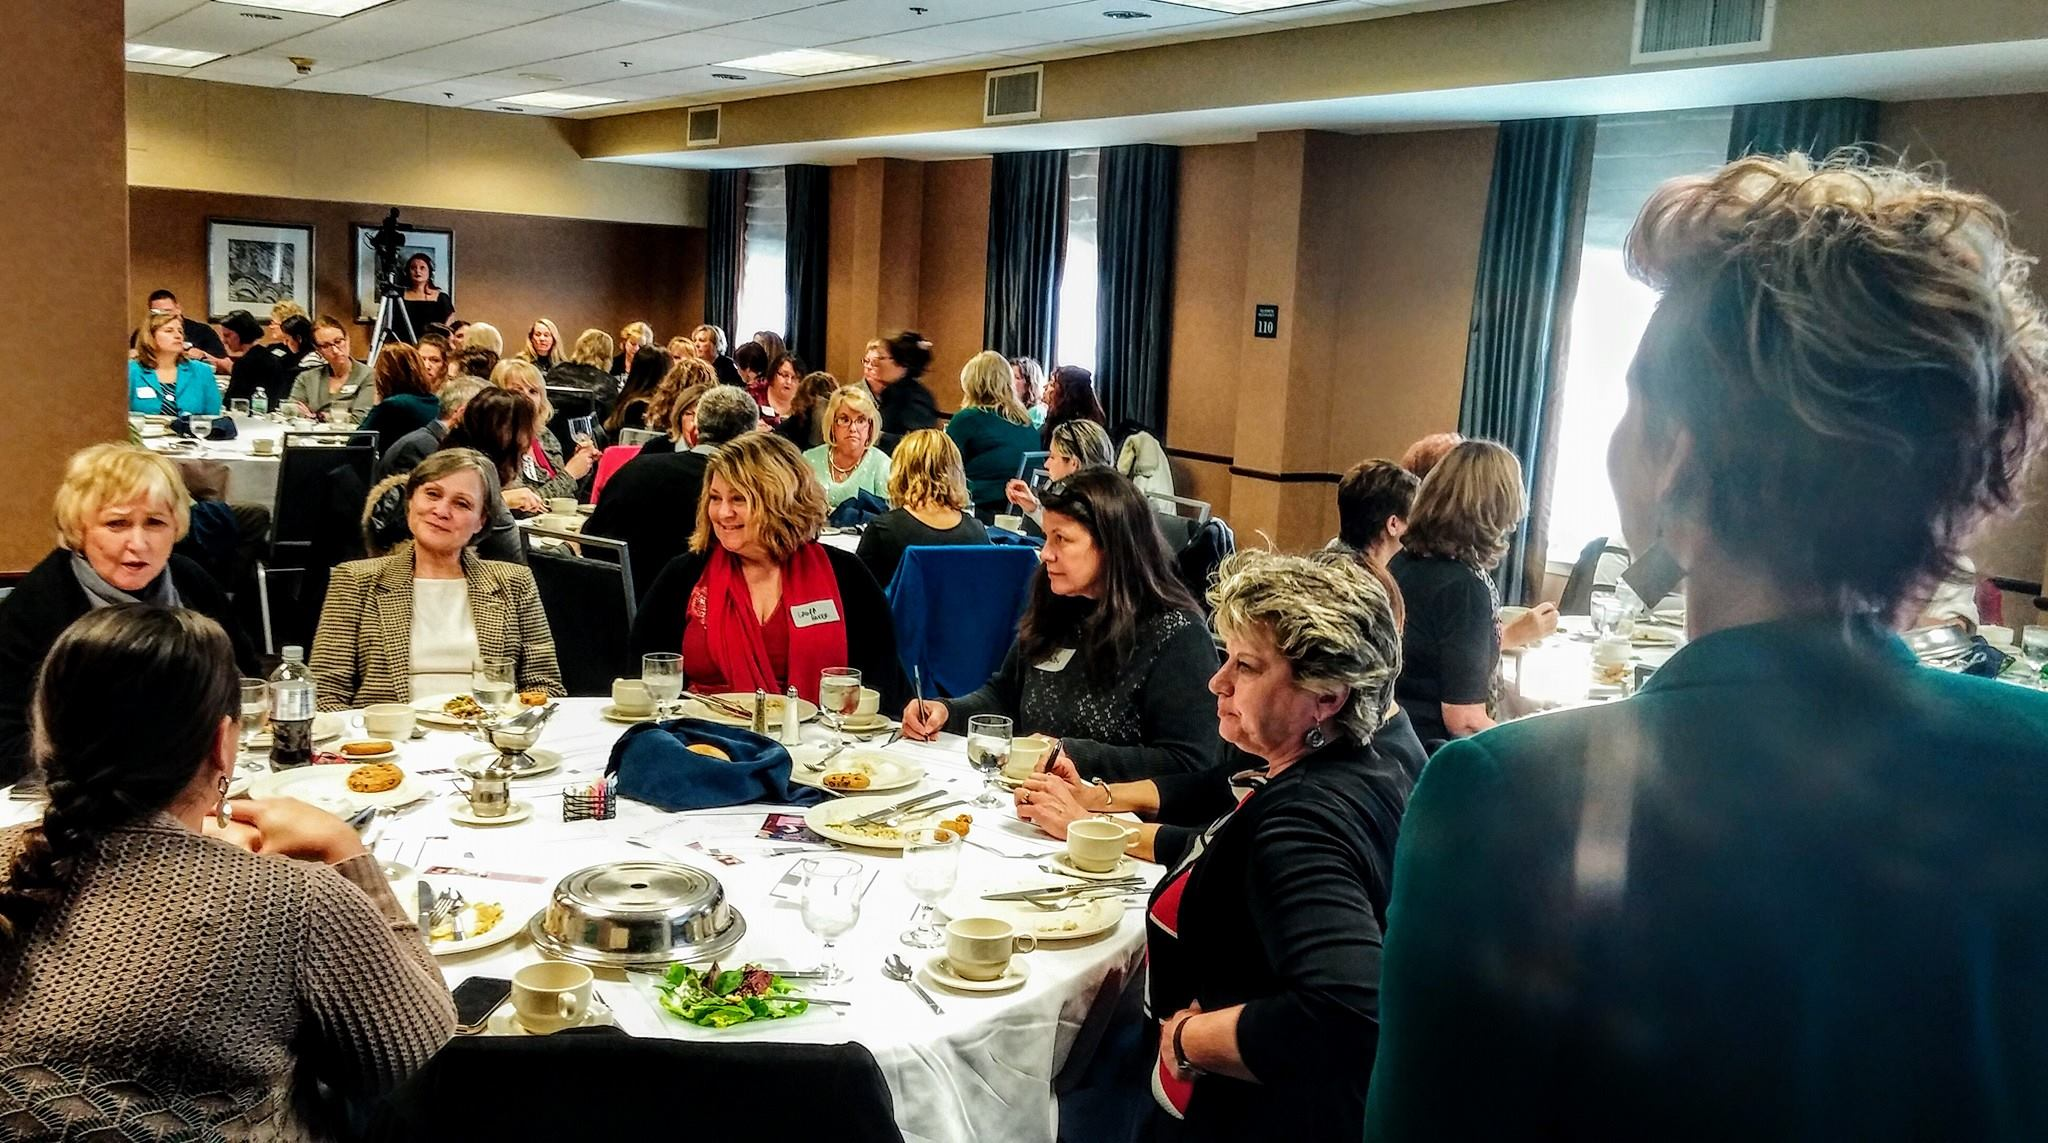 Strategic Partners Marketing to Present to Madison Chapter of Women Council of Realtors